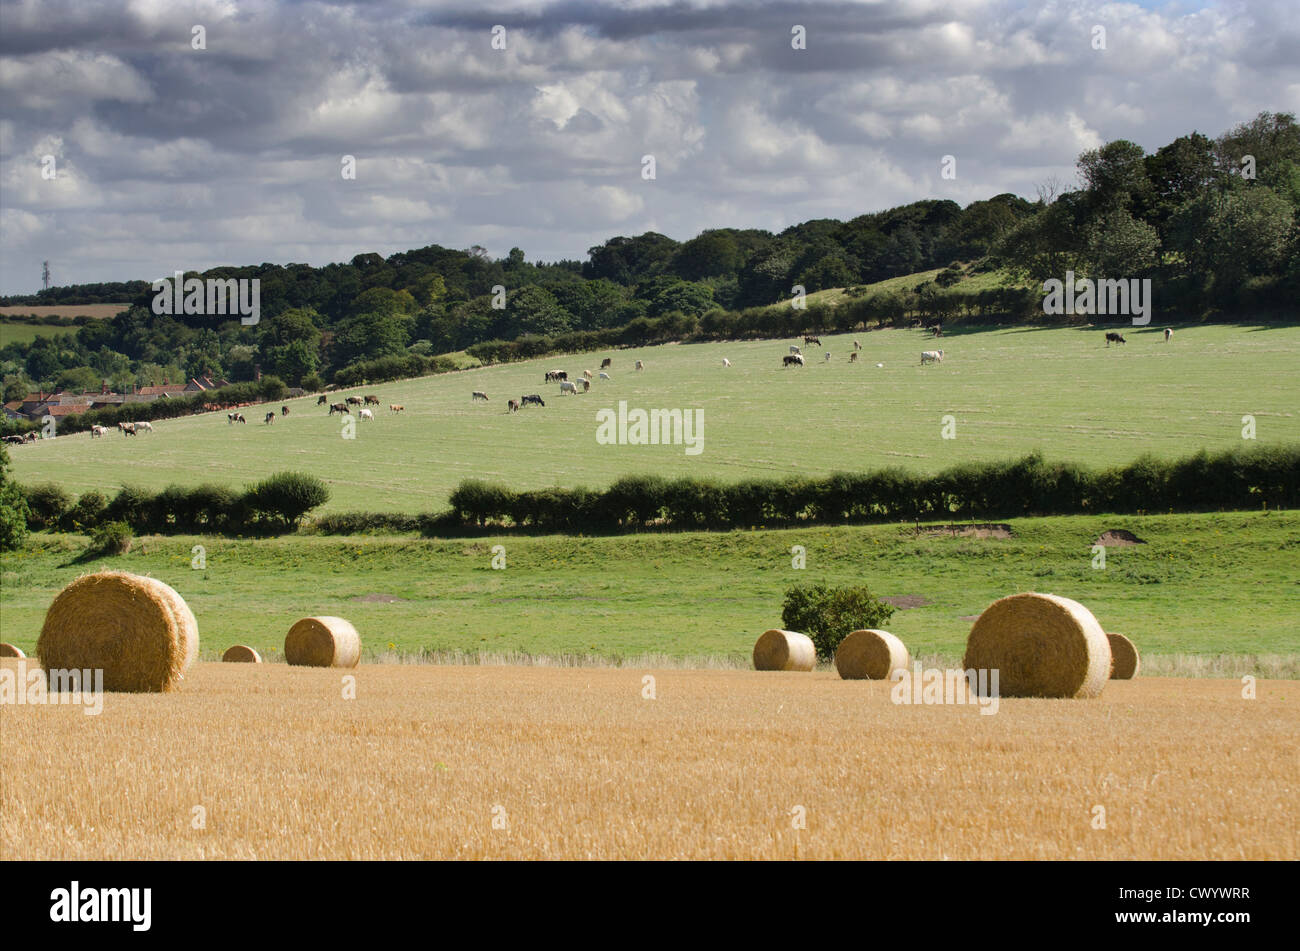 Straw bales on stubble field, with cattle grazing in distance, Stiffkey valley, Norfolk, UK - Stock Image